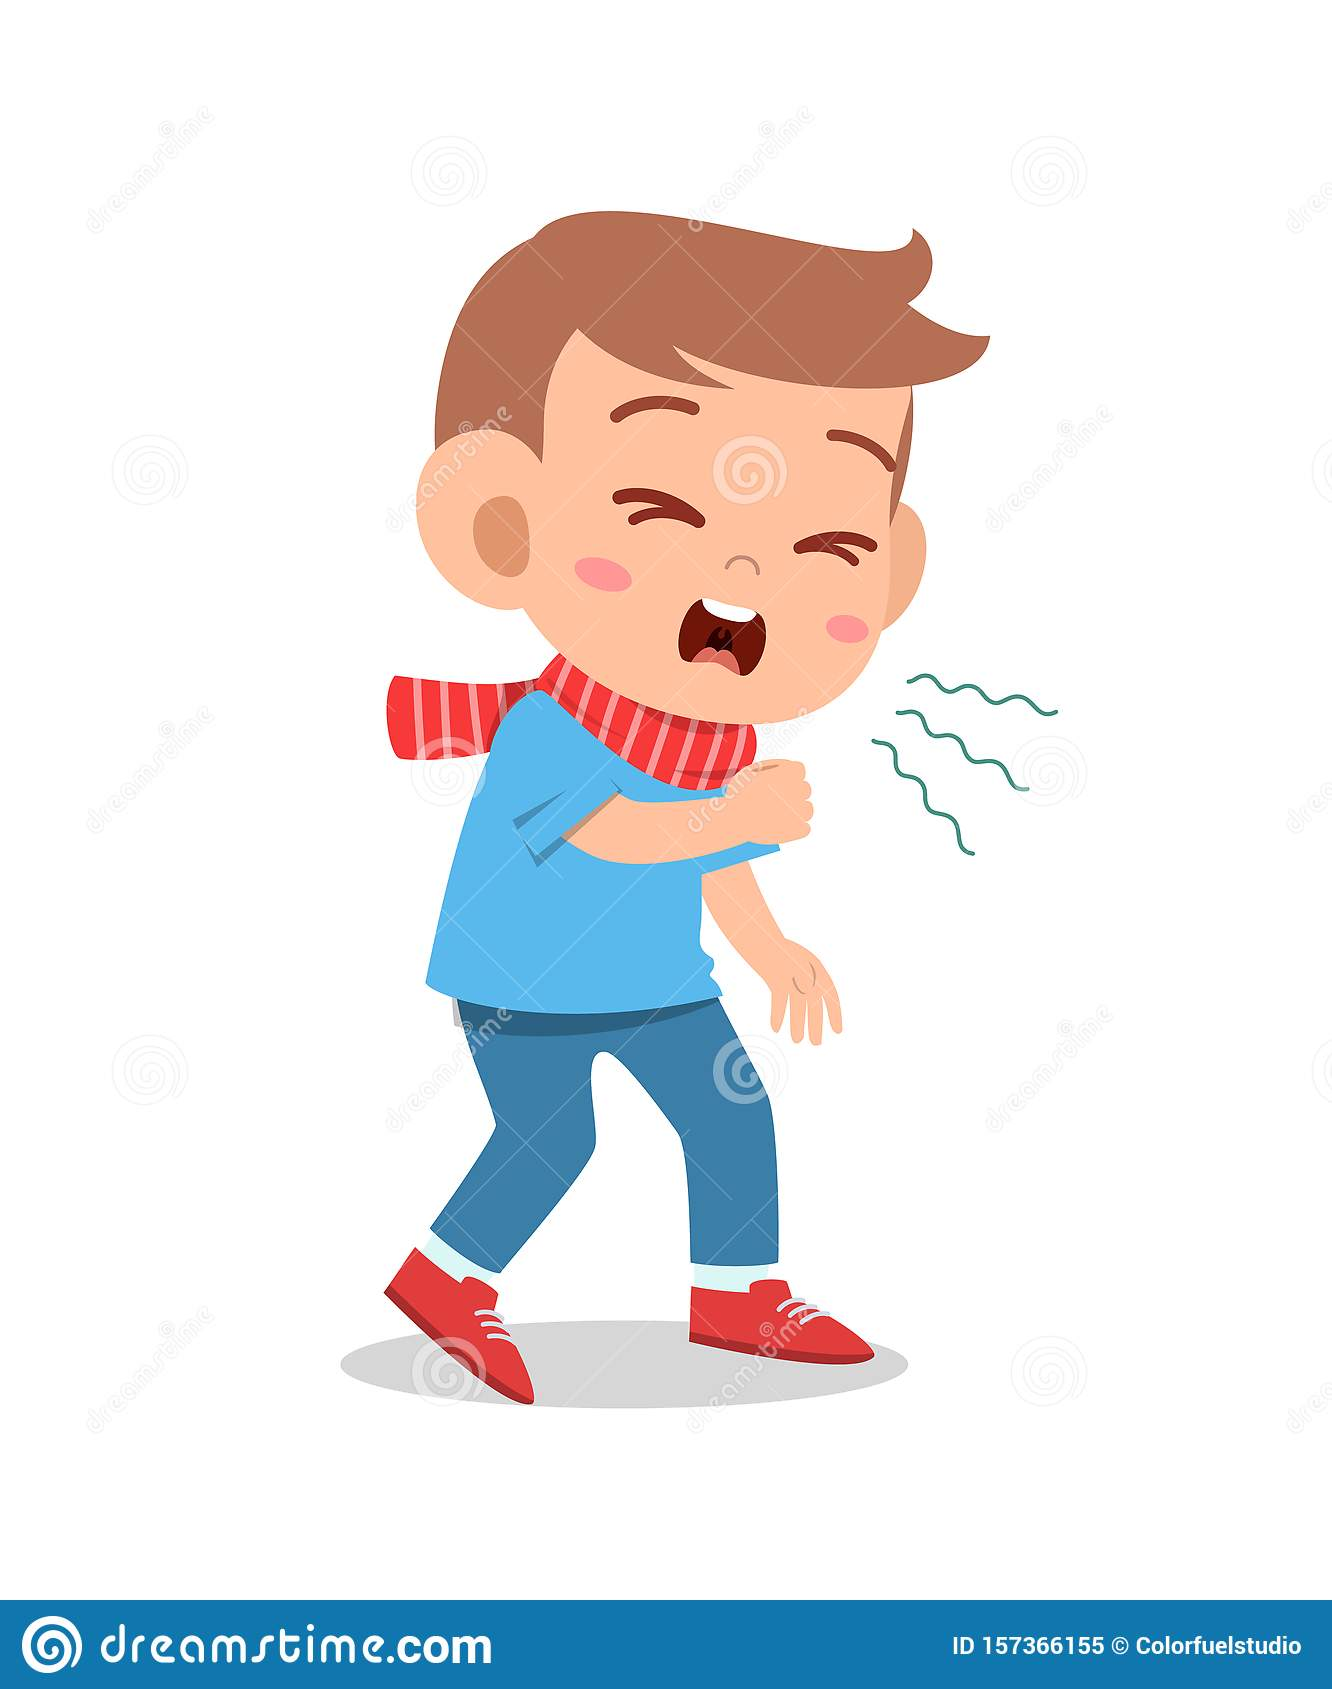 coughing kid cartoon stock illustrations 166 coughing kid cartoon stock illustrations vectors clipart dreamstime https www dreamstime com cartoon little kid boy coughing vector cartoon little kid boy coughing vector child family face cold health illness illustration image157366155